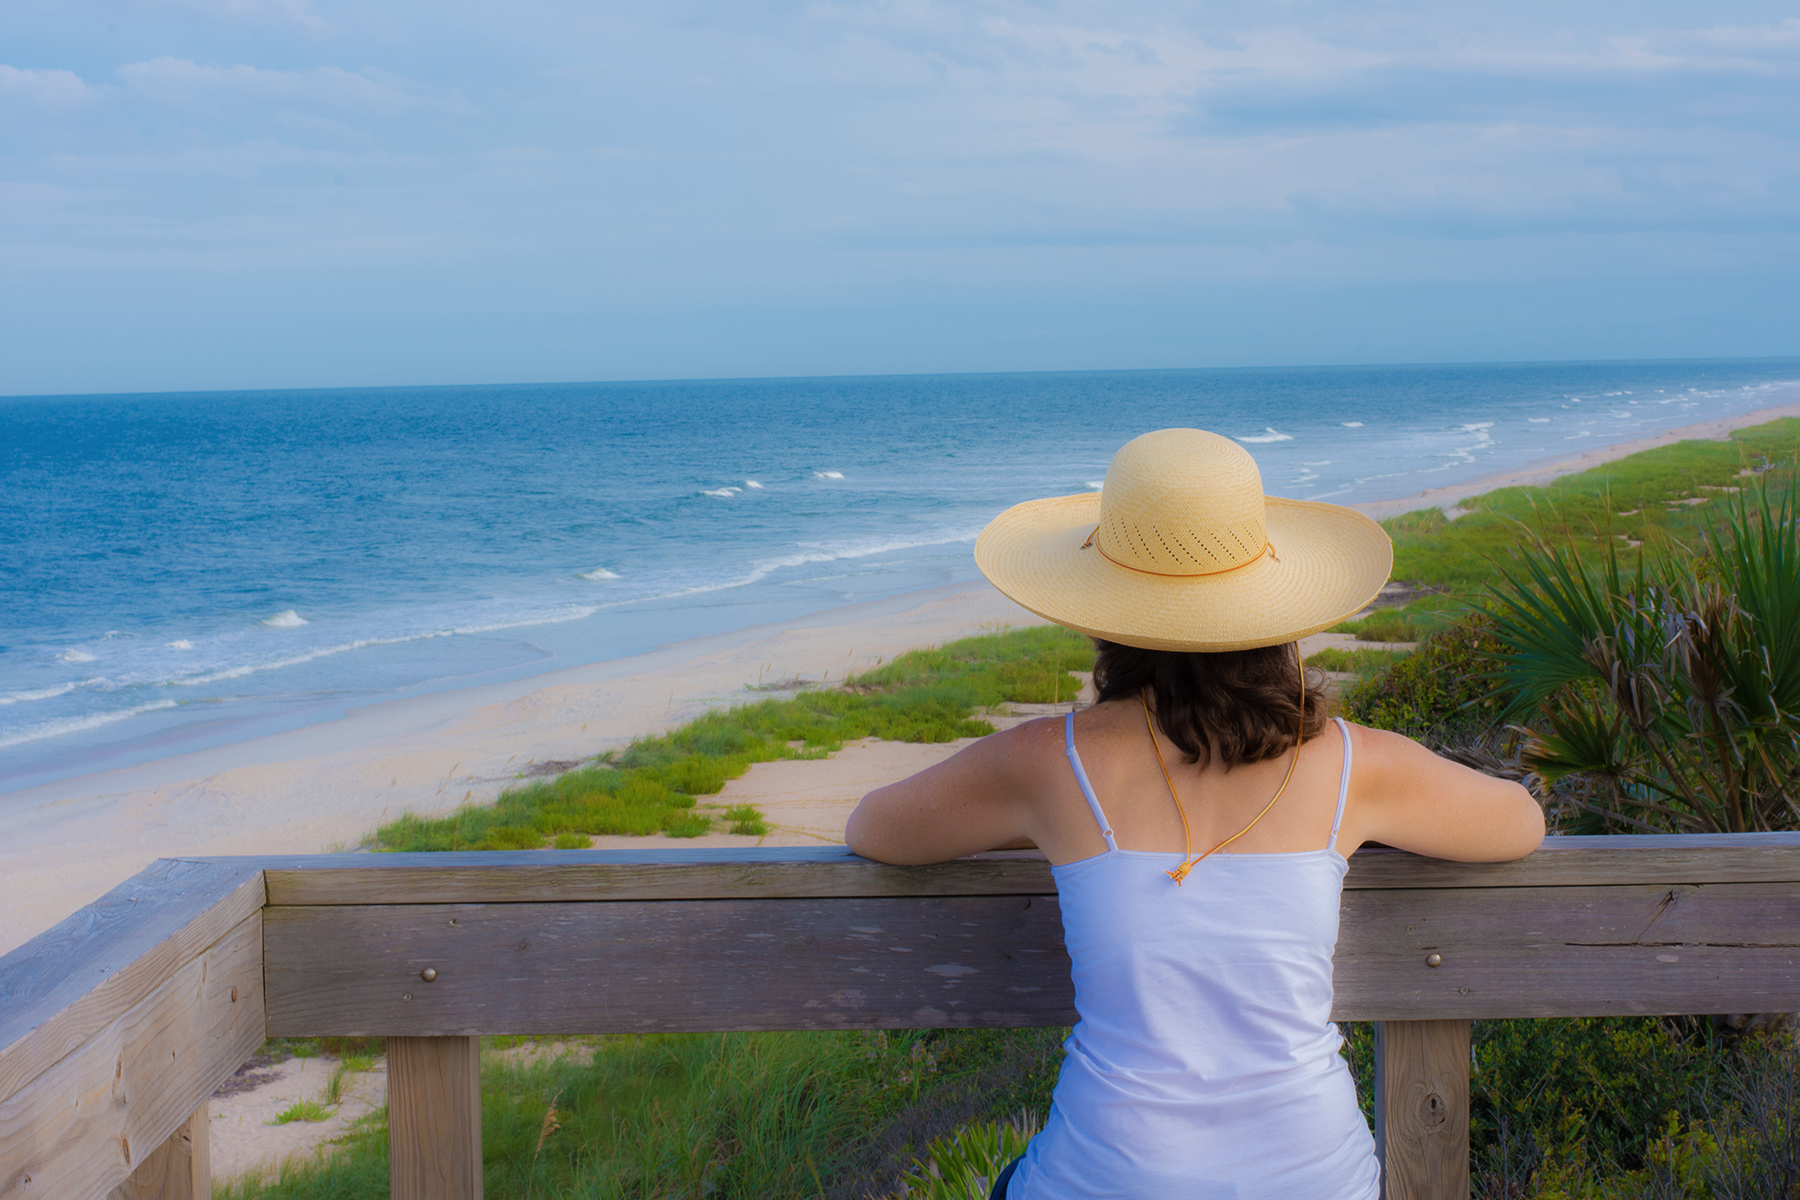 A woman Florida watches the beach of St. Augustine, Florida.